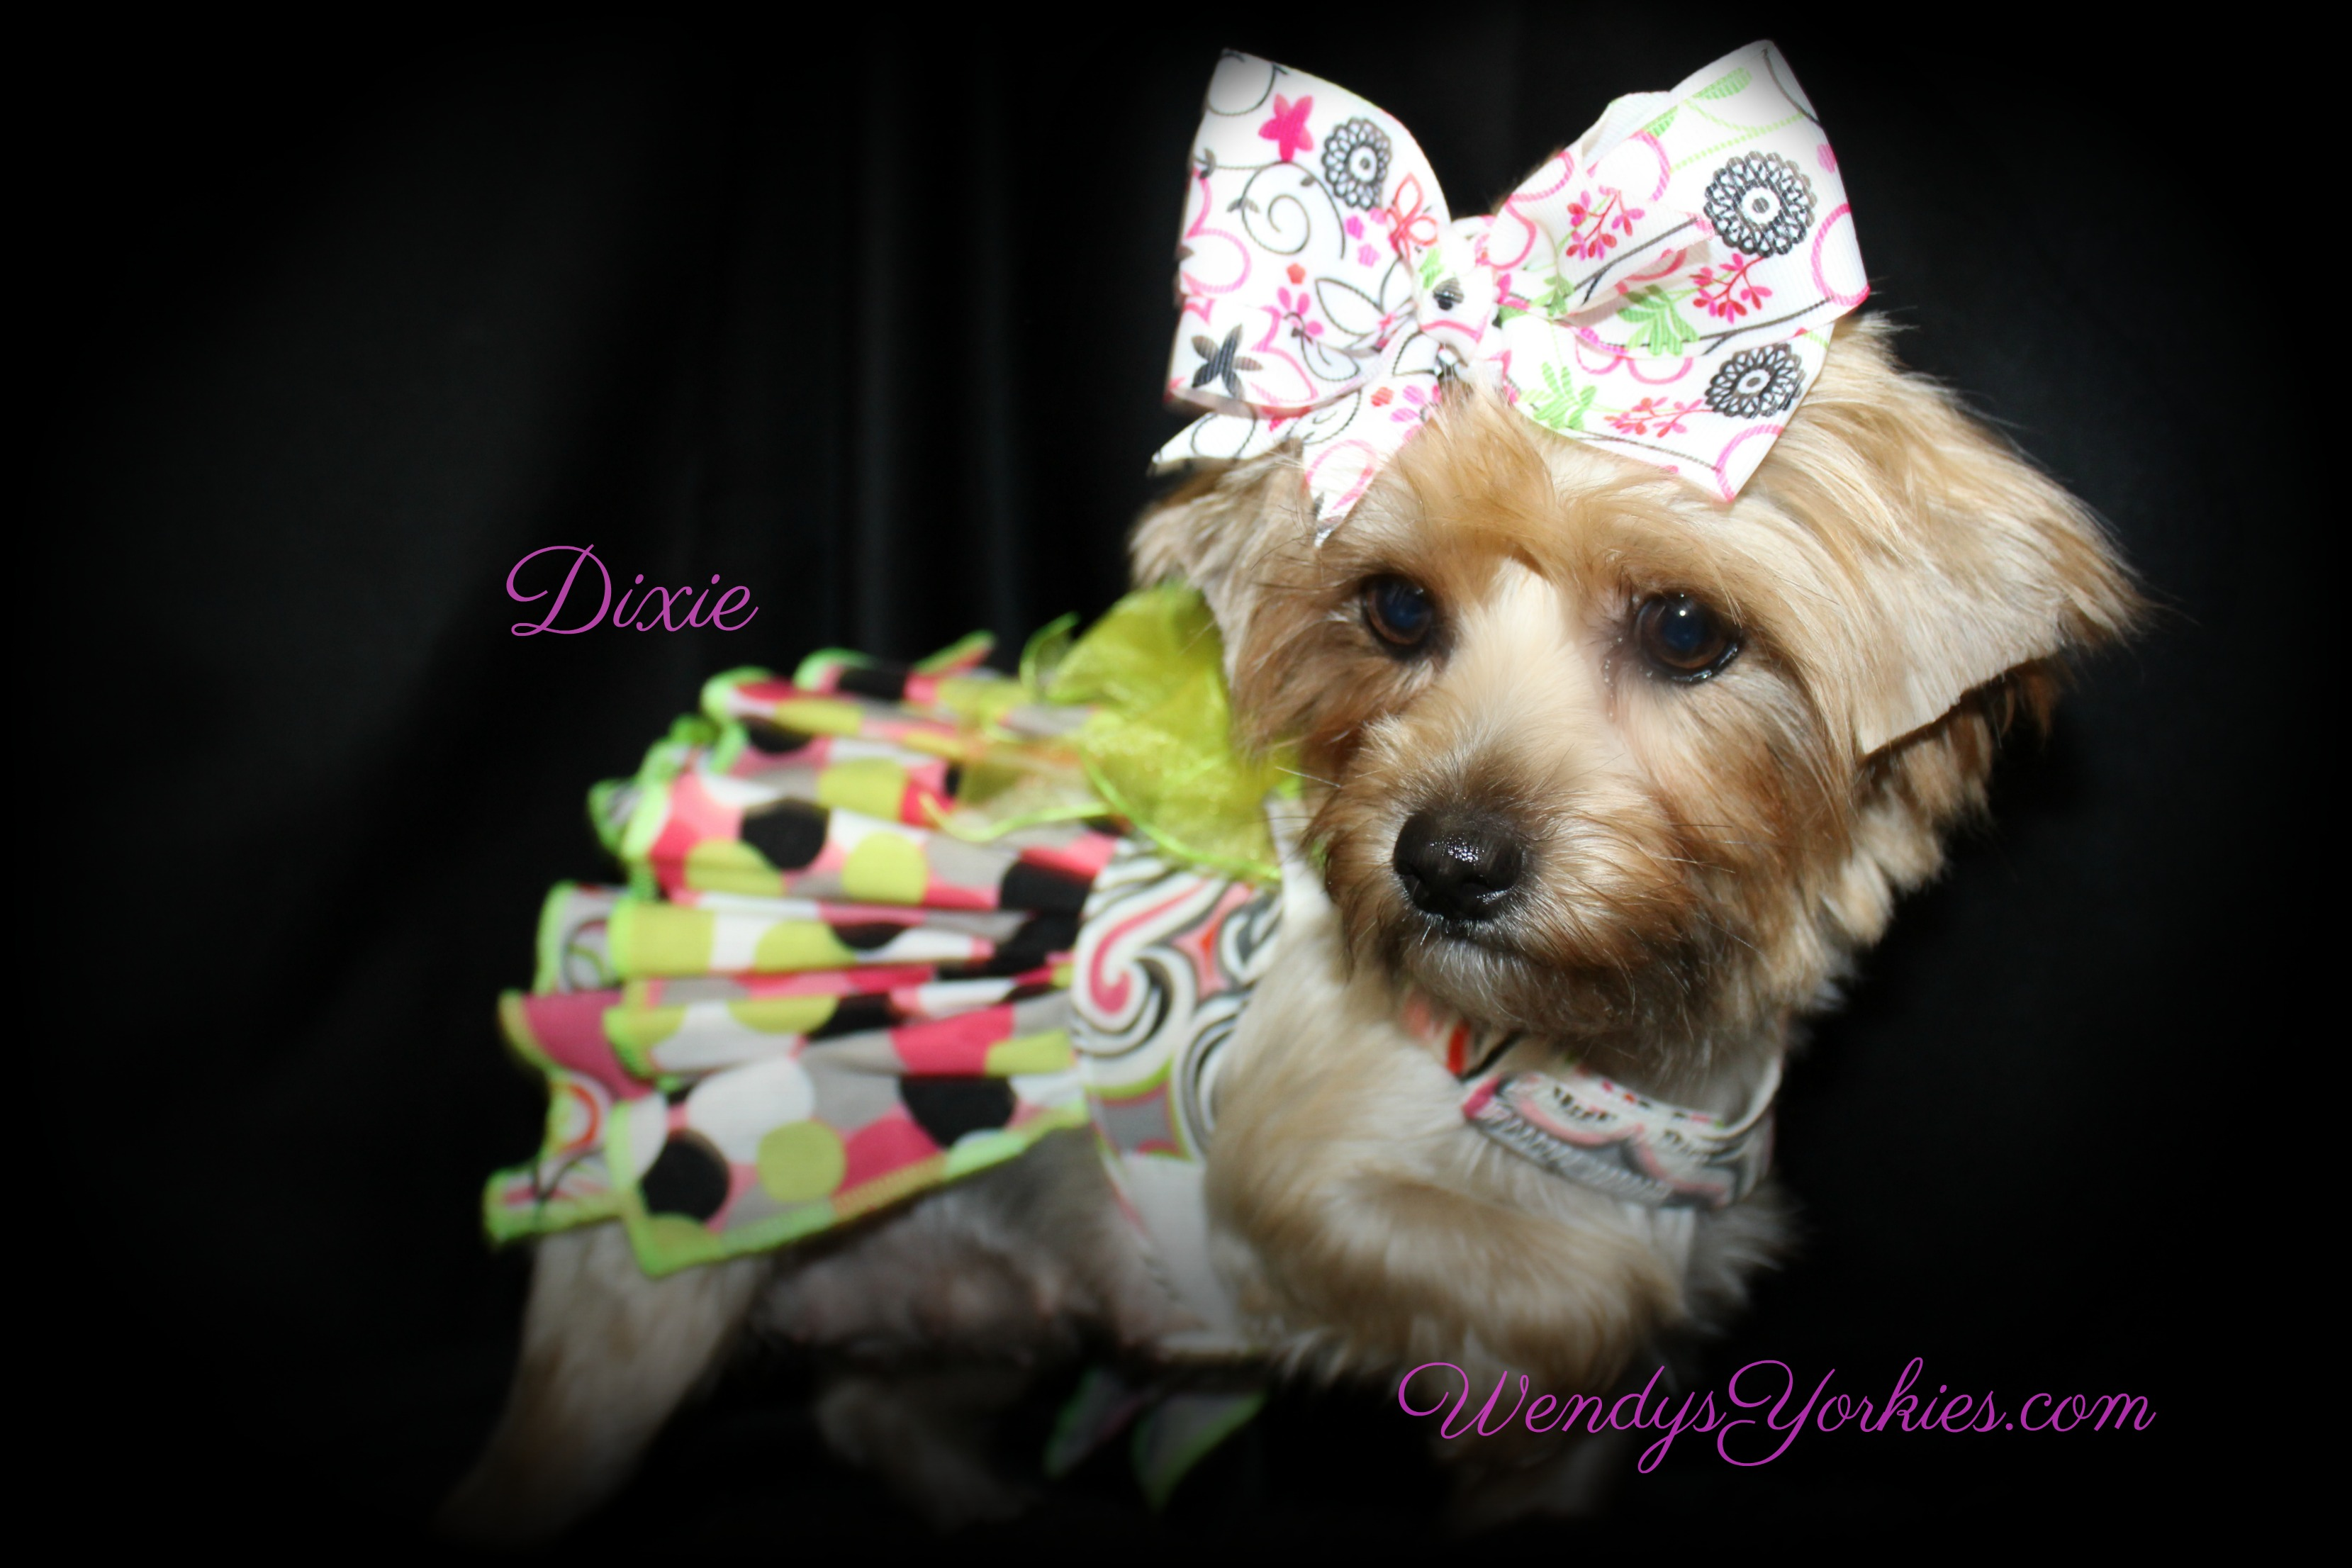 Yorkie puppy breeder in Texas, Dixie, WendysYorkies.com